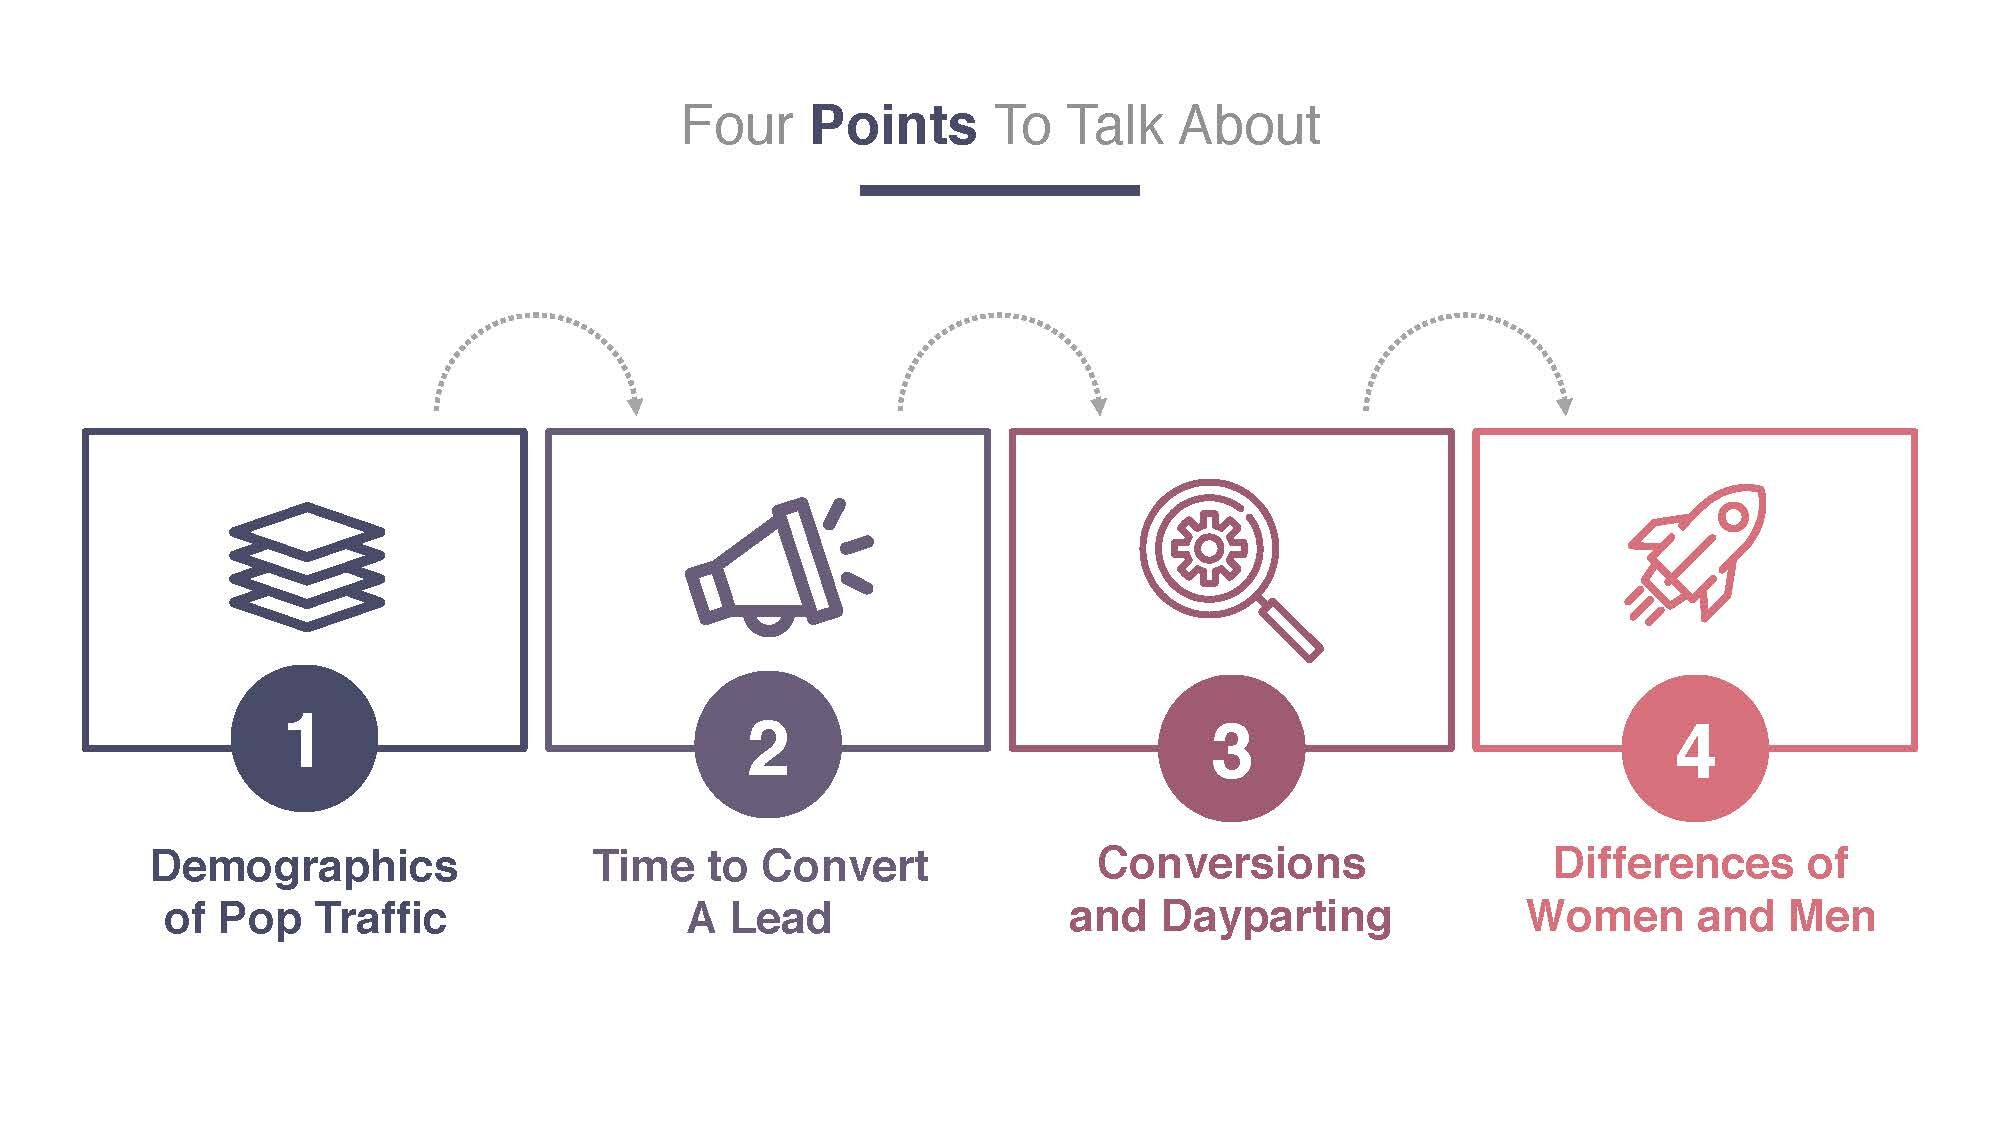 Alexander Willemsen – Four Points to Talk About